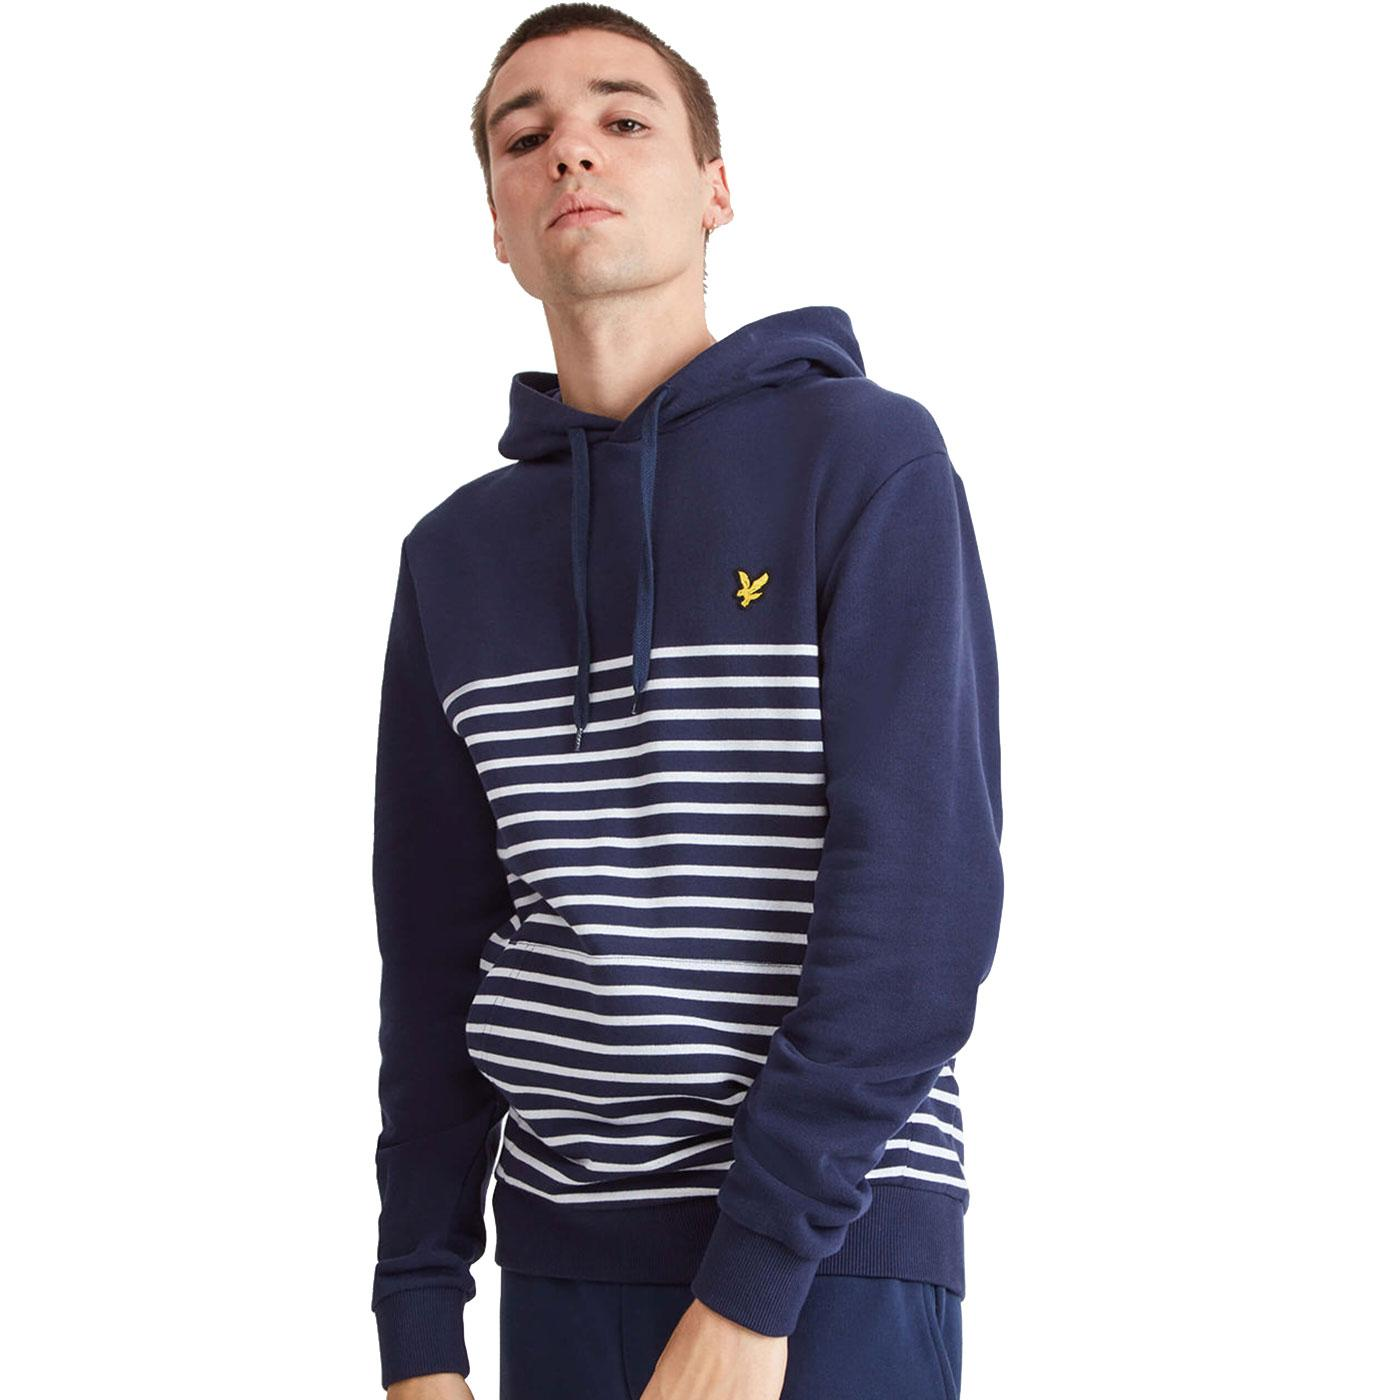 LYLE & SCOTT Retro Indie Breton Stripe Hooded Top